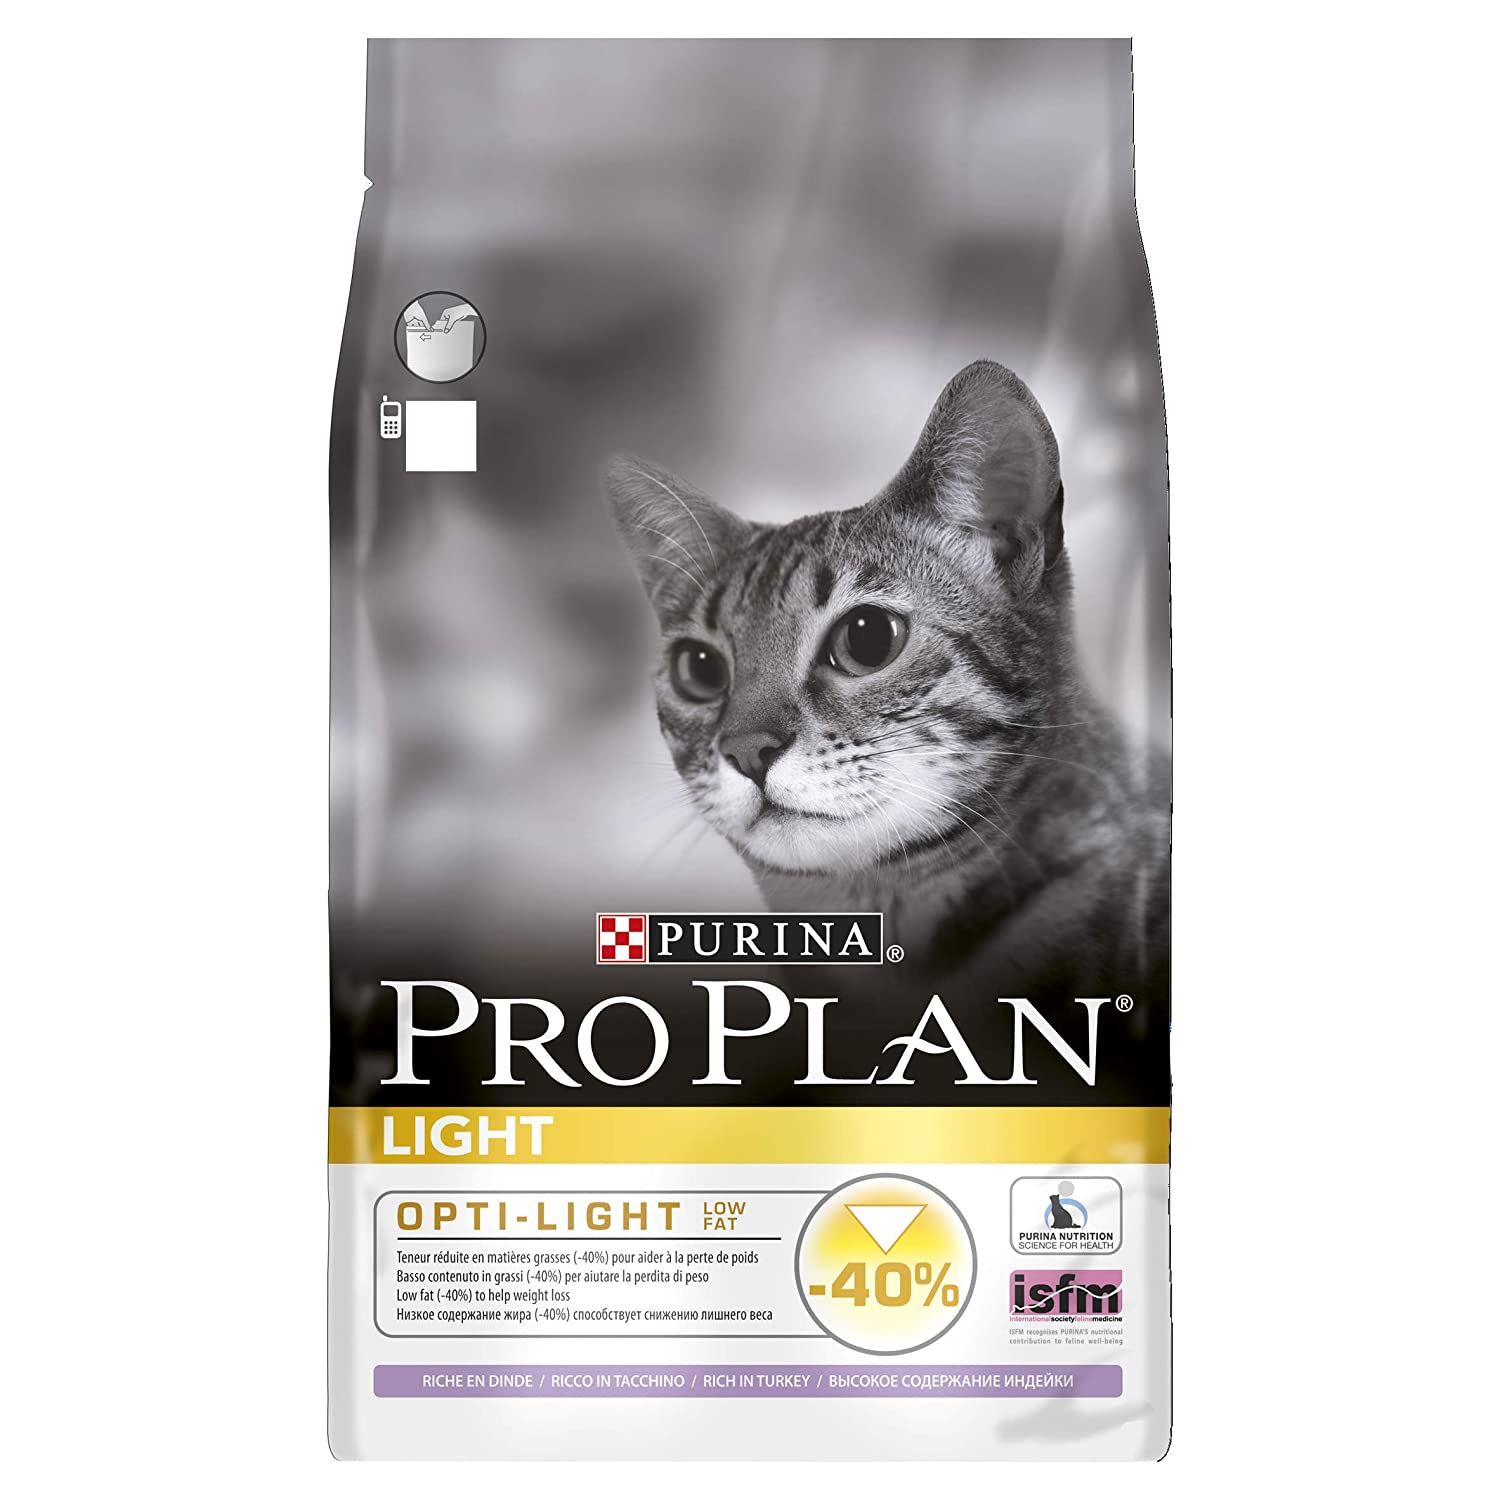 PRO PLAN Light - Riche en Dinde - 3 KG - Croquettes pour chat adulte 894